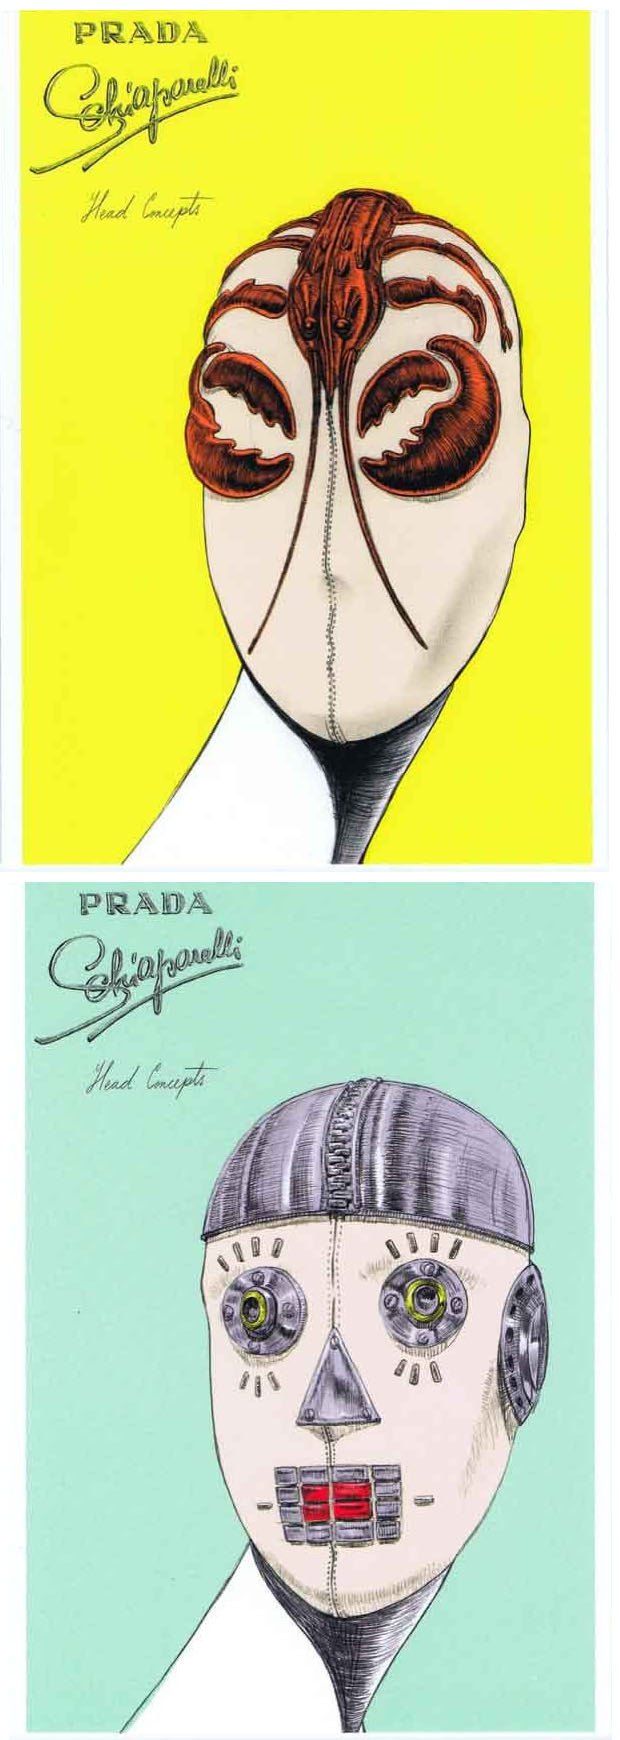 "curieuxdetrucs.com SCHIAPARELLI & PRADA - Impossible Conversations Cartes postales à la boutique du MET Although separated by time, Miuccia Prada and Elsa Schiaparelli—both Italian, both feminists—share striking affinities in terms of their design strategies and fashion manifestoes. Presented as an intimate ""conversation,"" Schiaparelli and Prada: Impossible Conversations aims to tease out formal and conceptual similarities between the two designers. The book itself is an objet d'art, a ""book within a book"" that reflects the conceptual and inventive nature of their creations."